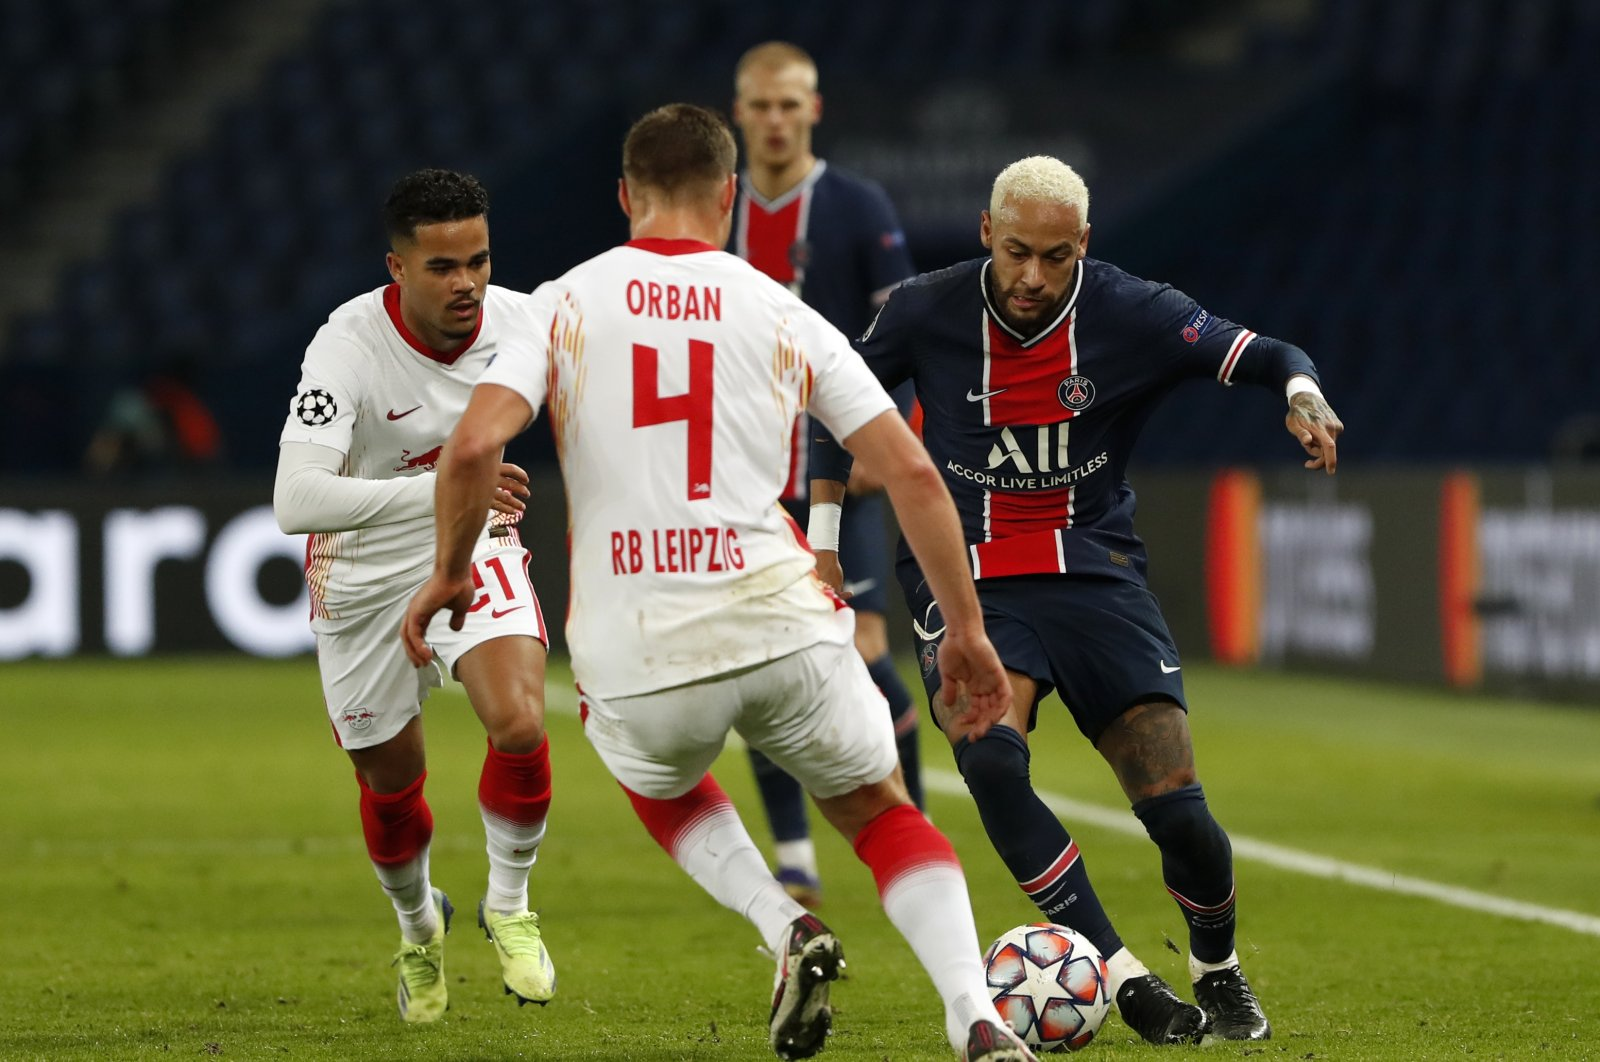 PSG's Neymar (R) duels for the ball with Leipzig's Willi Orban (C) and Justin Kluivert, during a Champions League match in Paris, France, Nov. 24, 2020. (AP Photo)